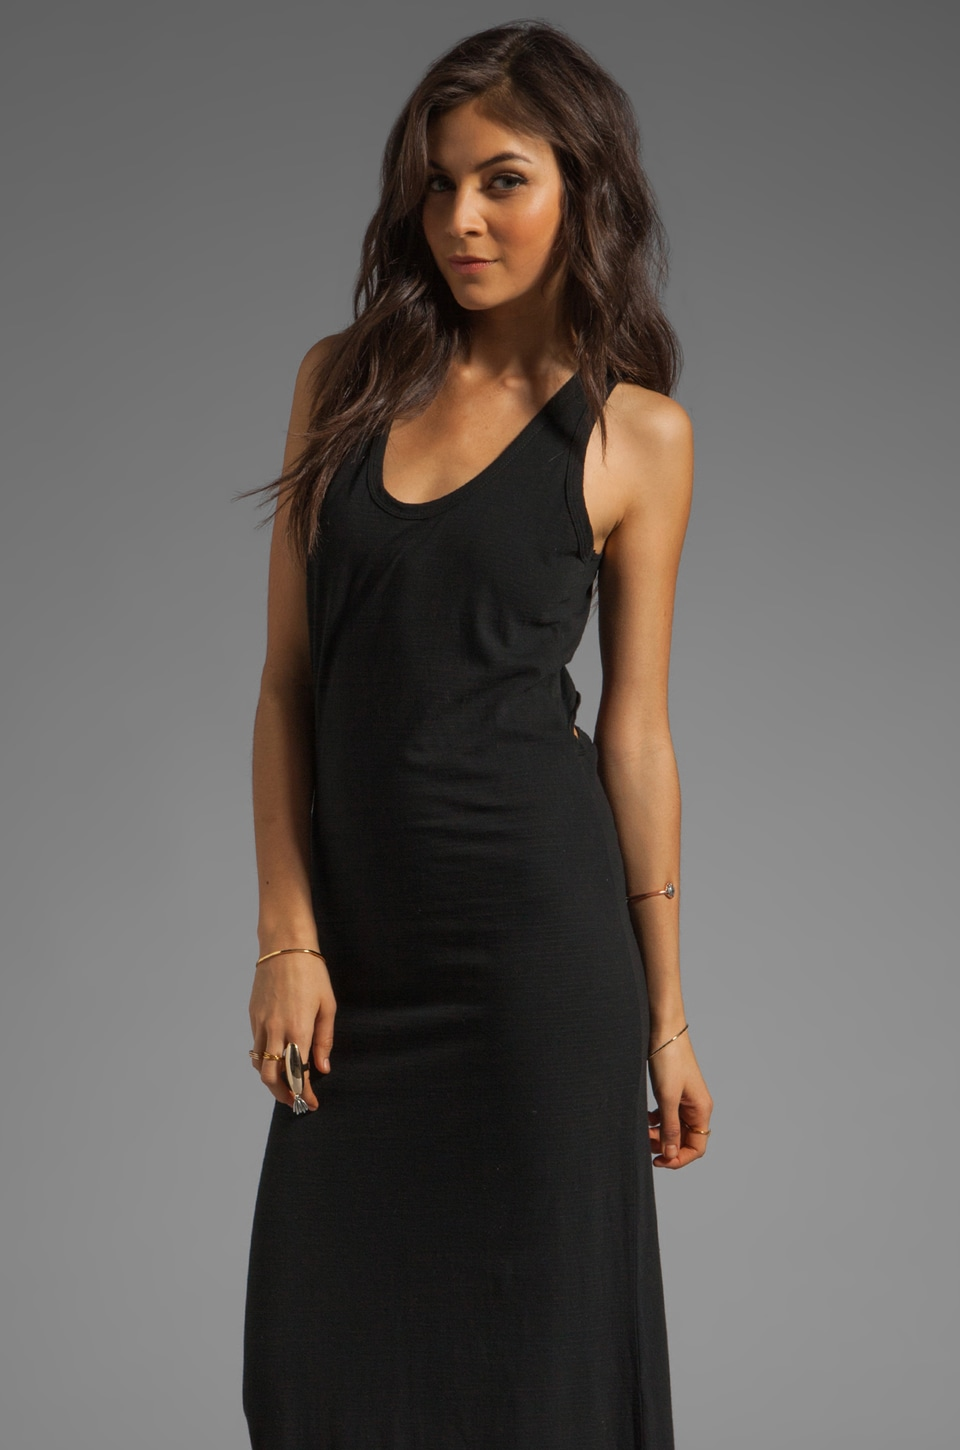 Saint Grace Reiko Contrast Maxi Dress in Black